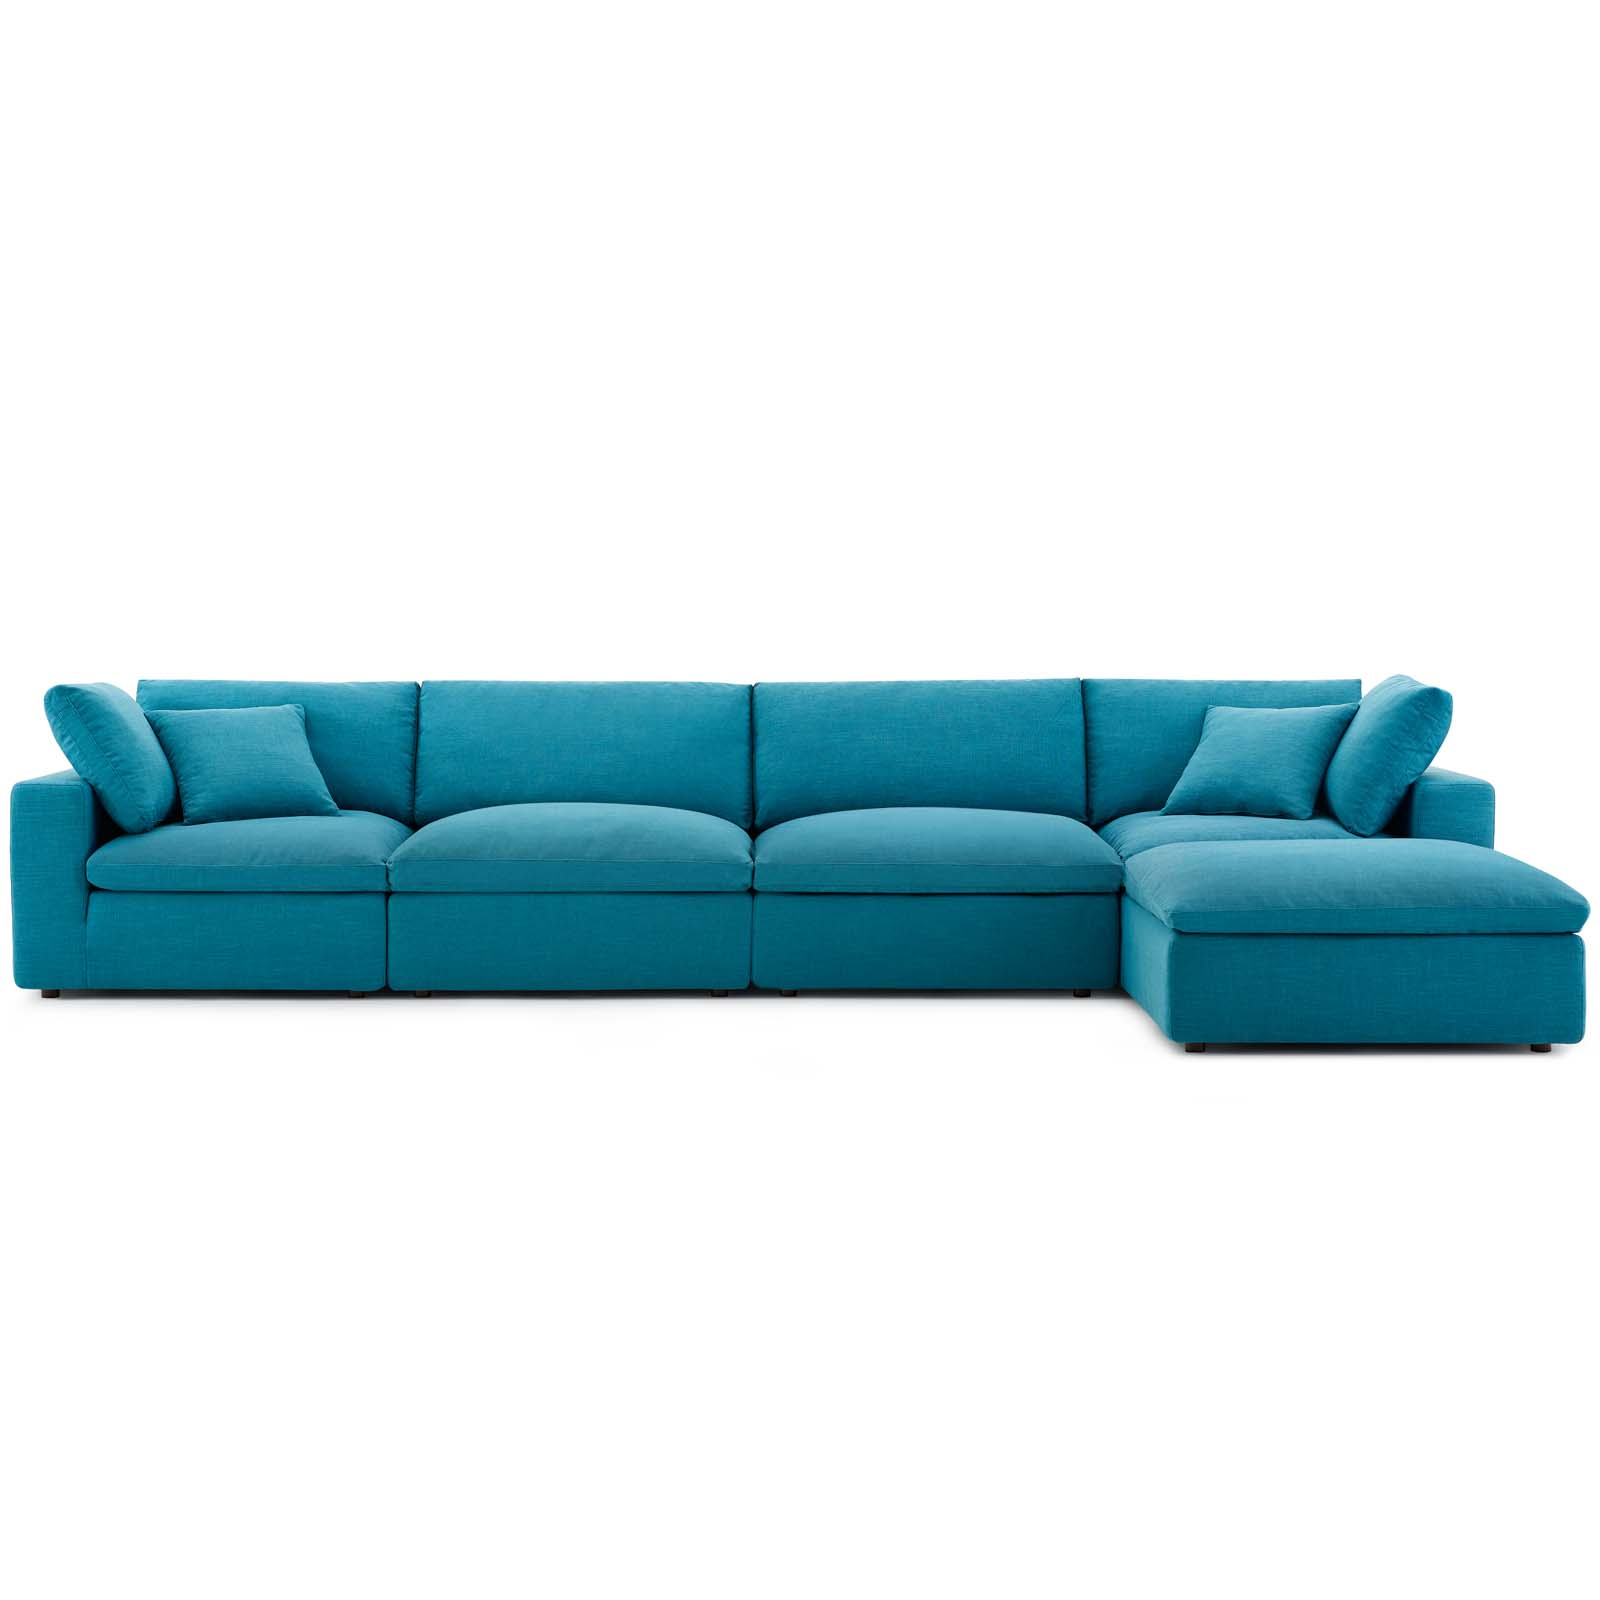 Commix Down Filled Overstuffed 5 Piece Sectional Sofa Set Teal In Down Filled Sofas (View 1 of 15)